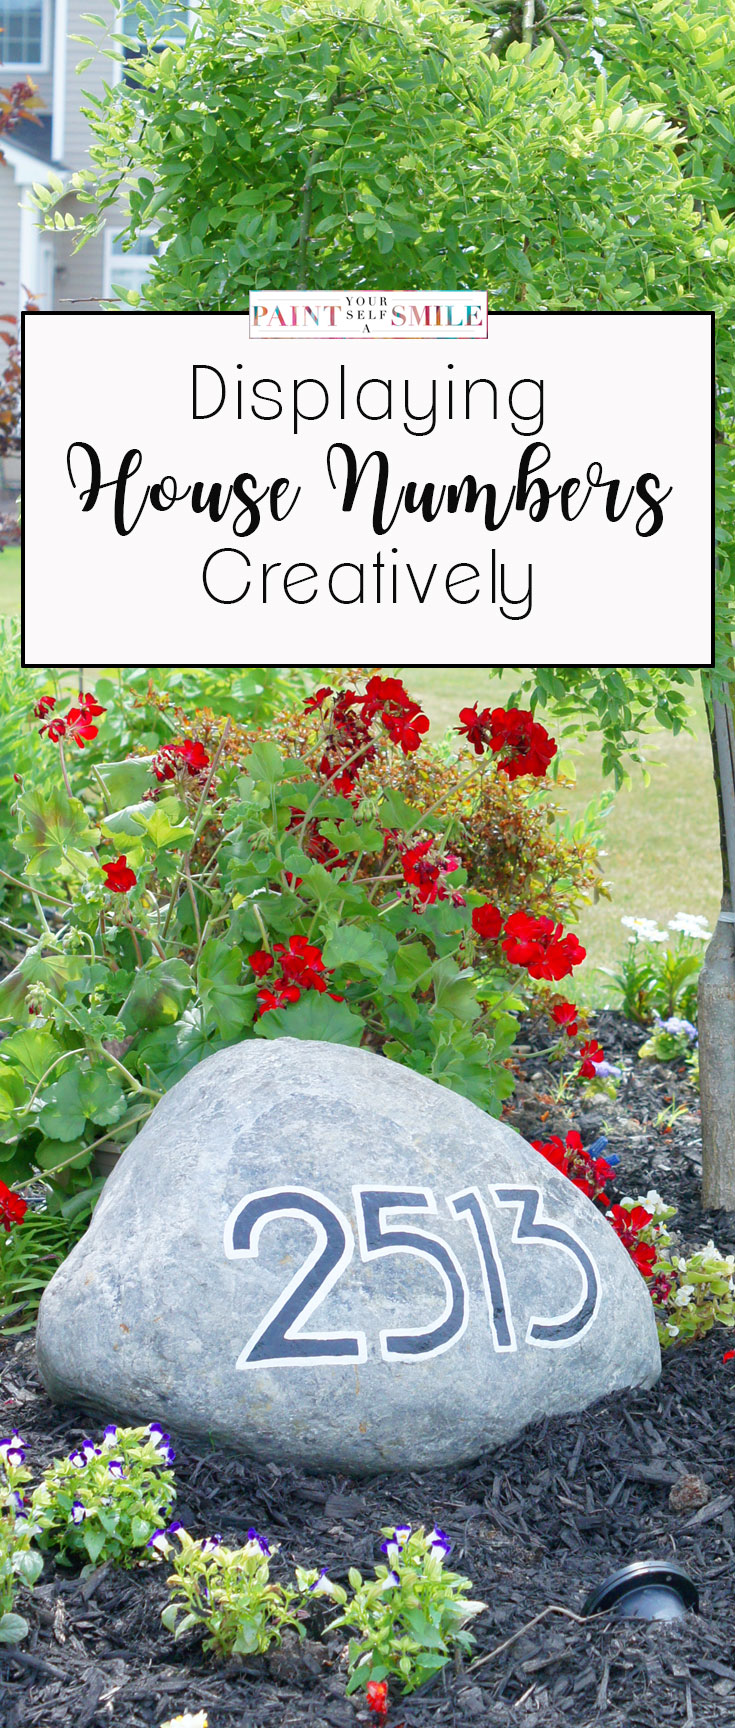 Make your house address more visible by adding  house numbers in your Landscape.  This project is part of the 5 week Curb Appeal Challenge.